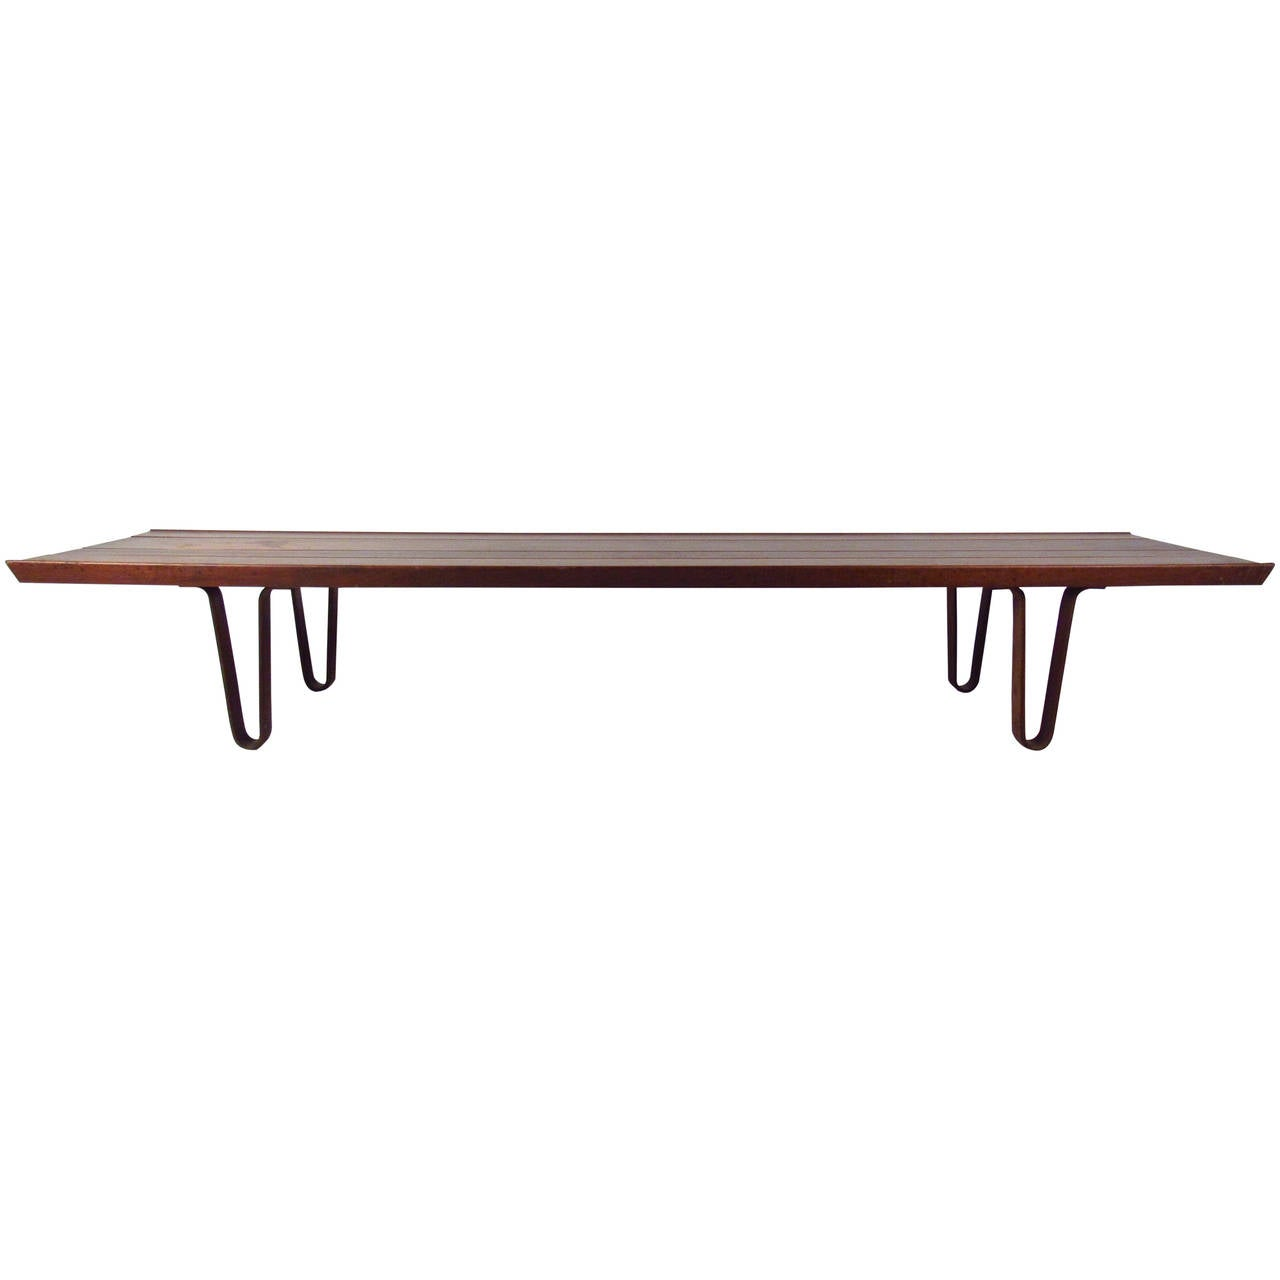 Wormley Coffee Table With Bentwood Legs For Sale At 1stdibs